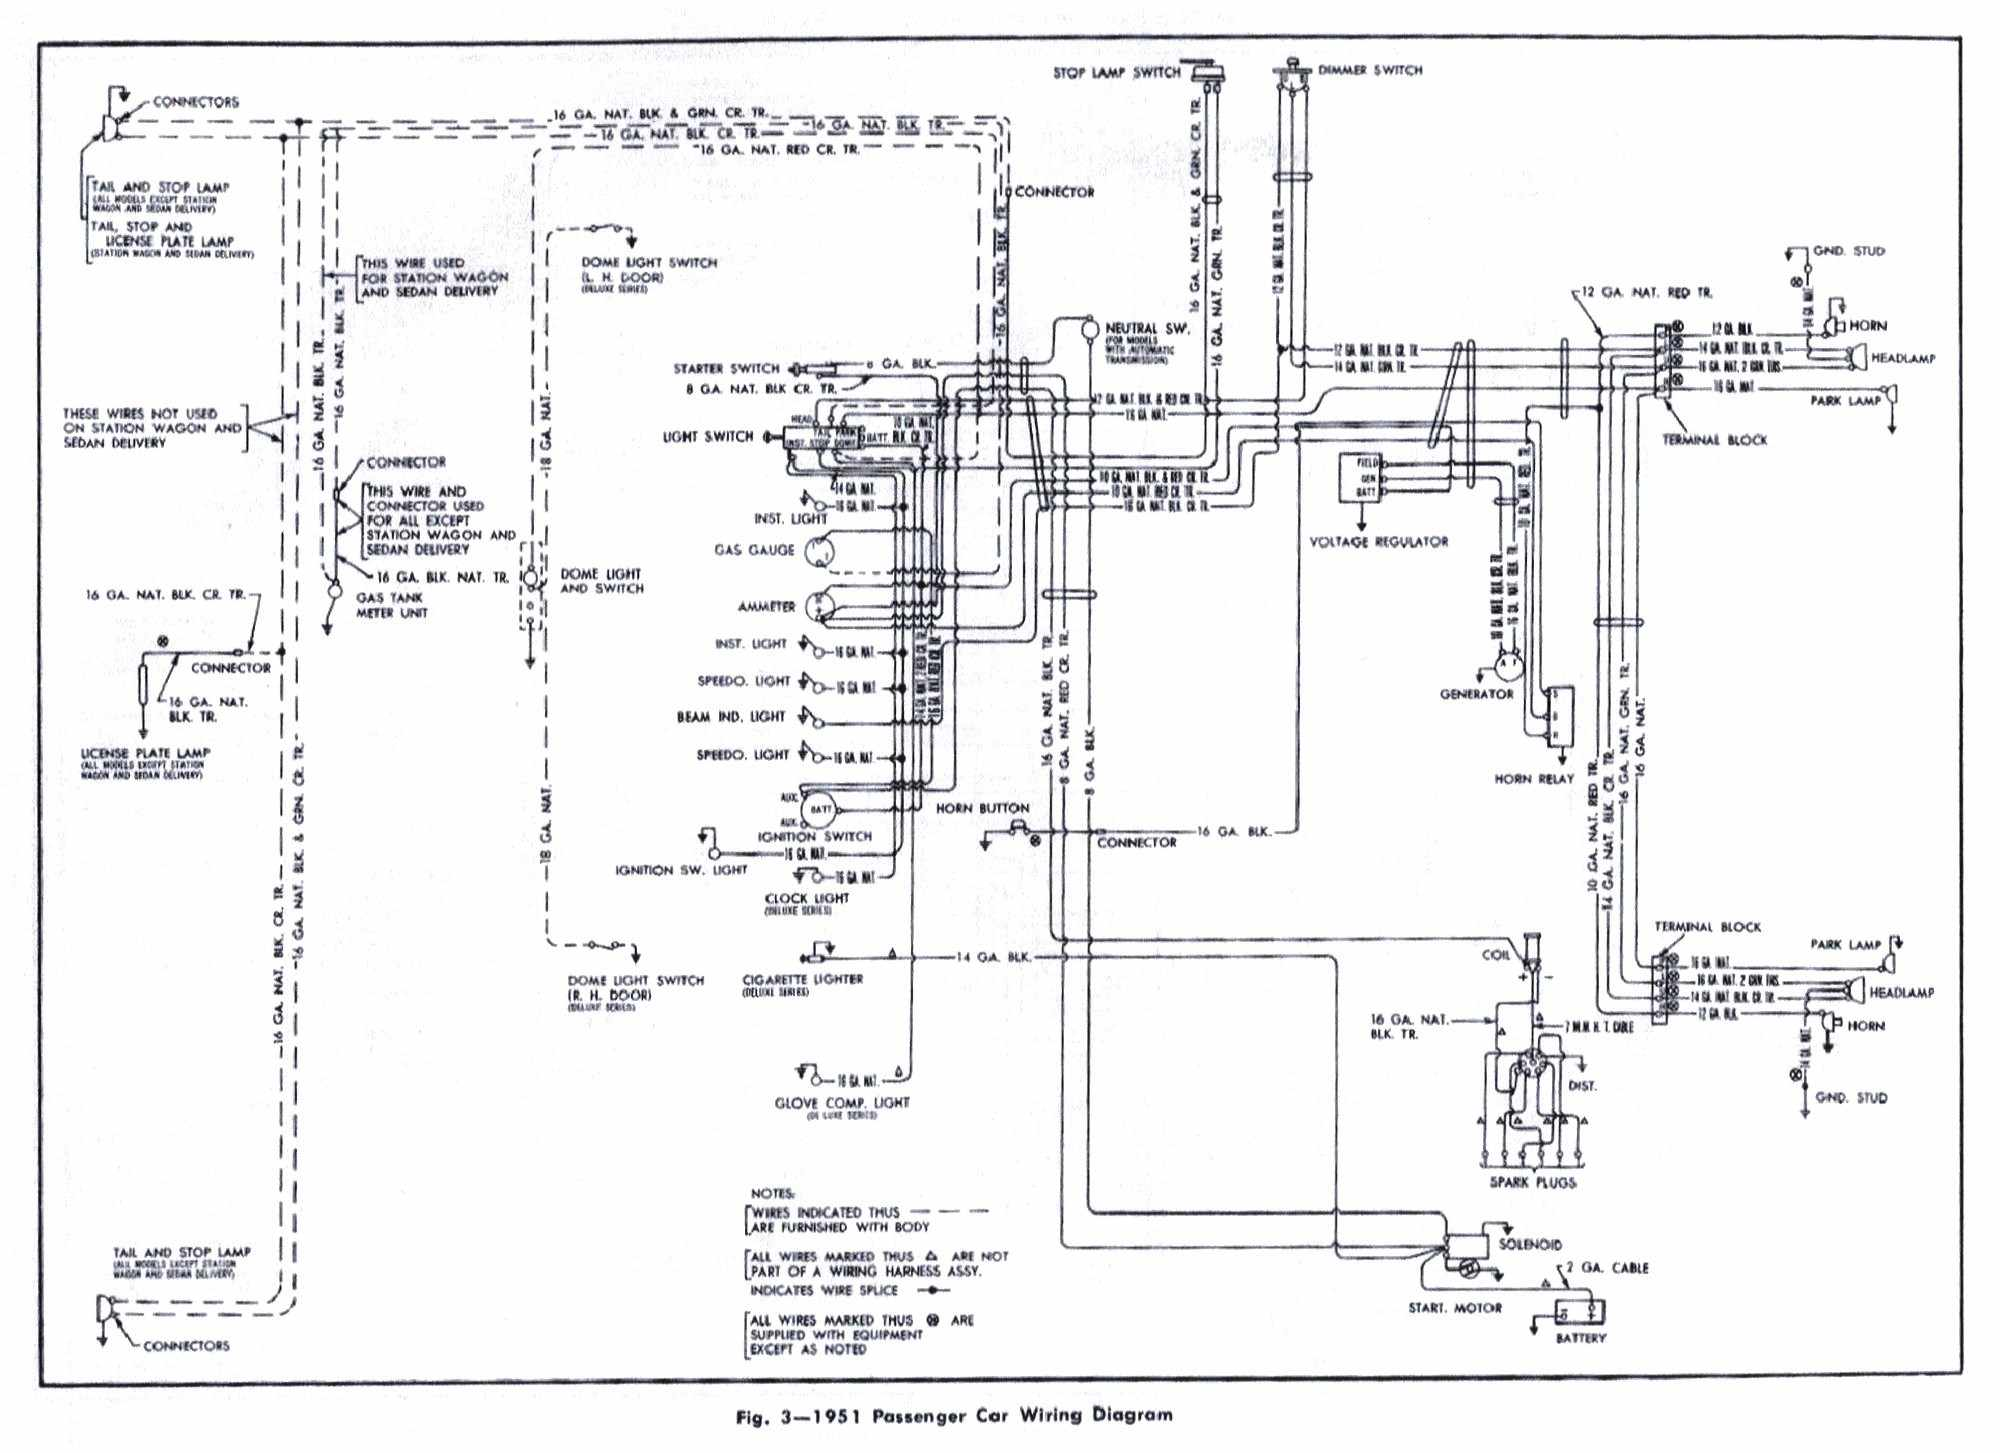 Chevrolet Car Manuals Wiring Diagrams Pdf Fault Codes Basic Automotive Schematic Download